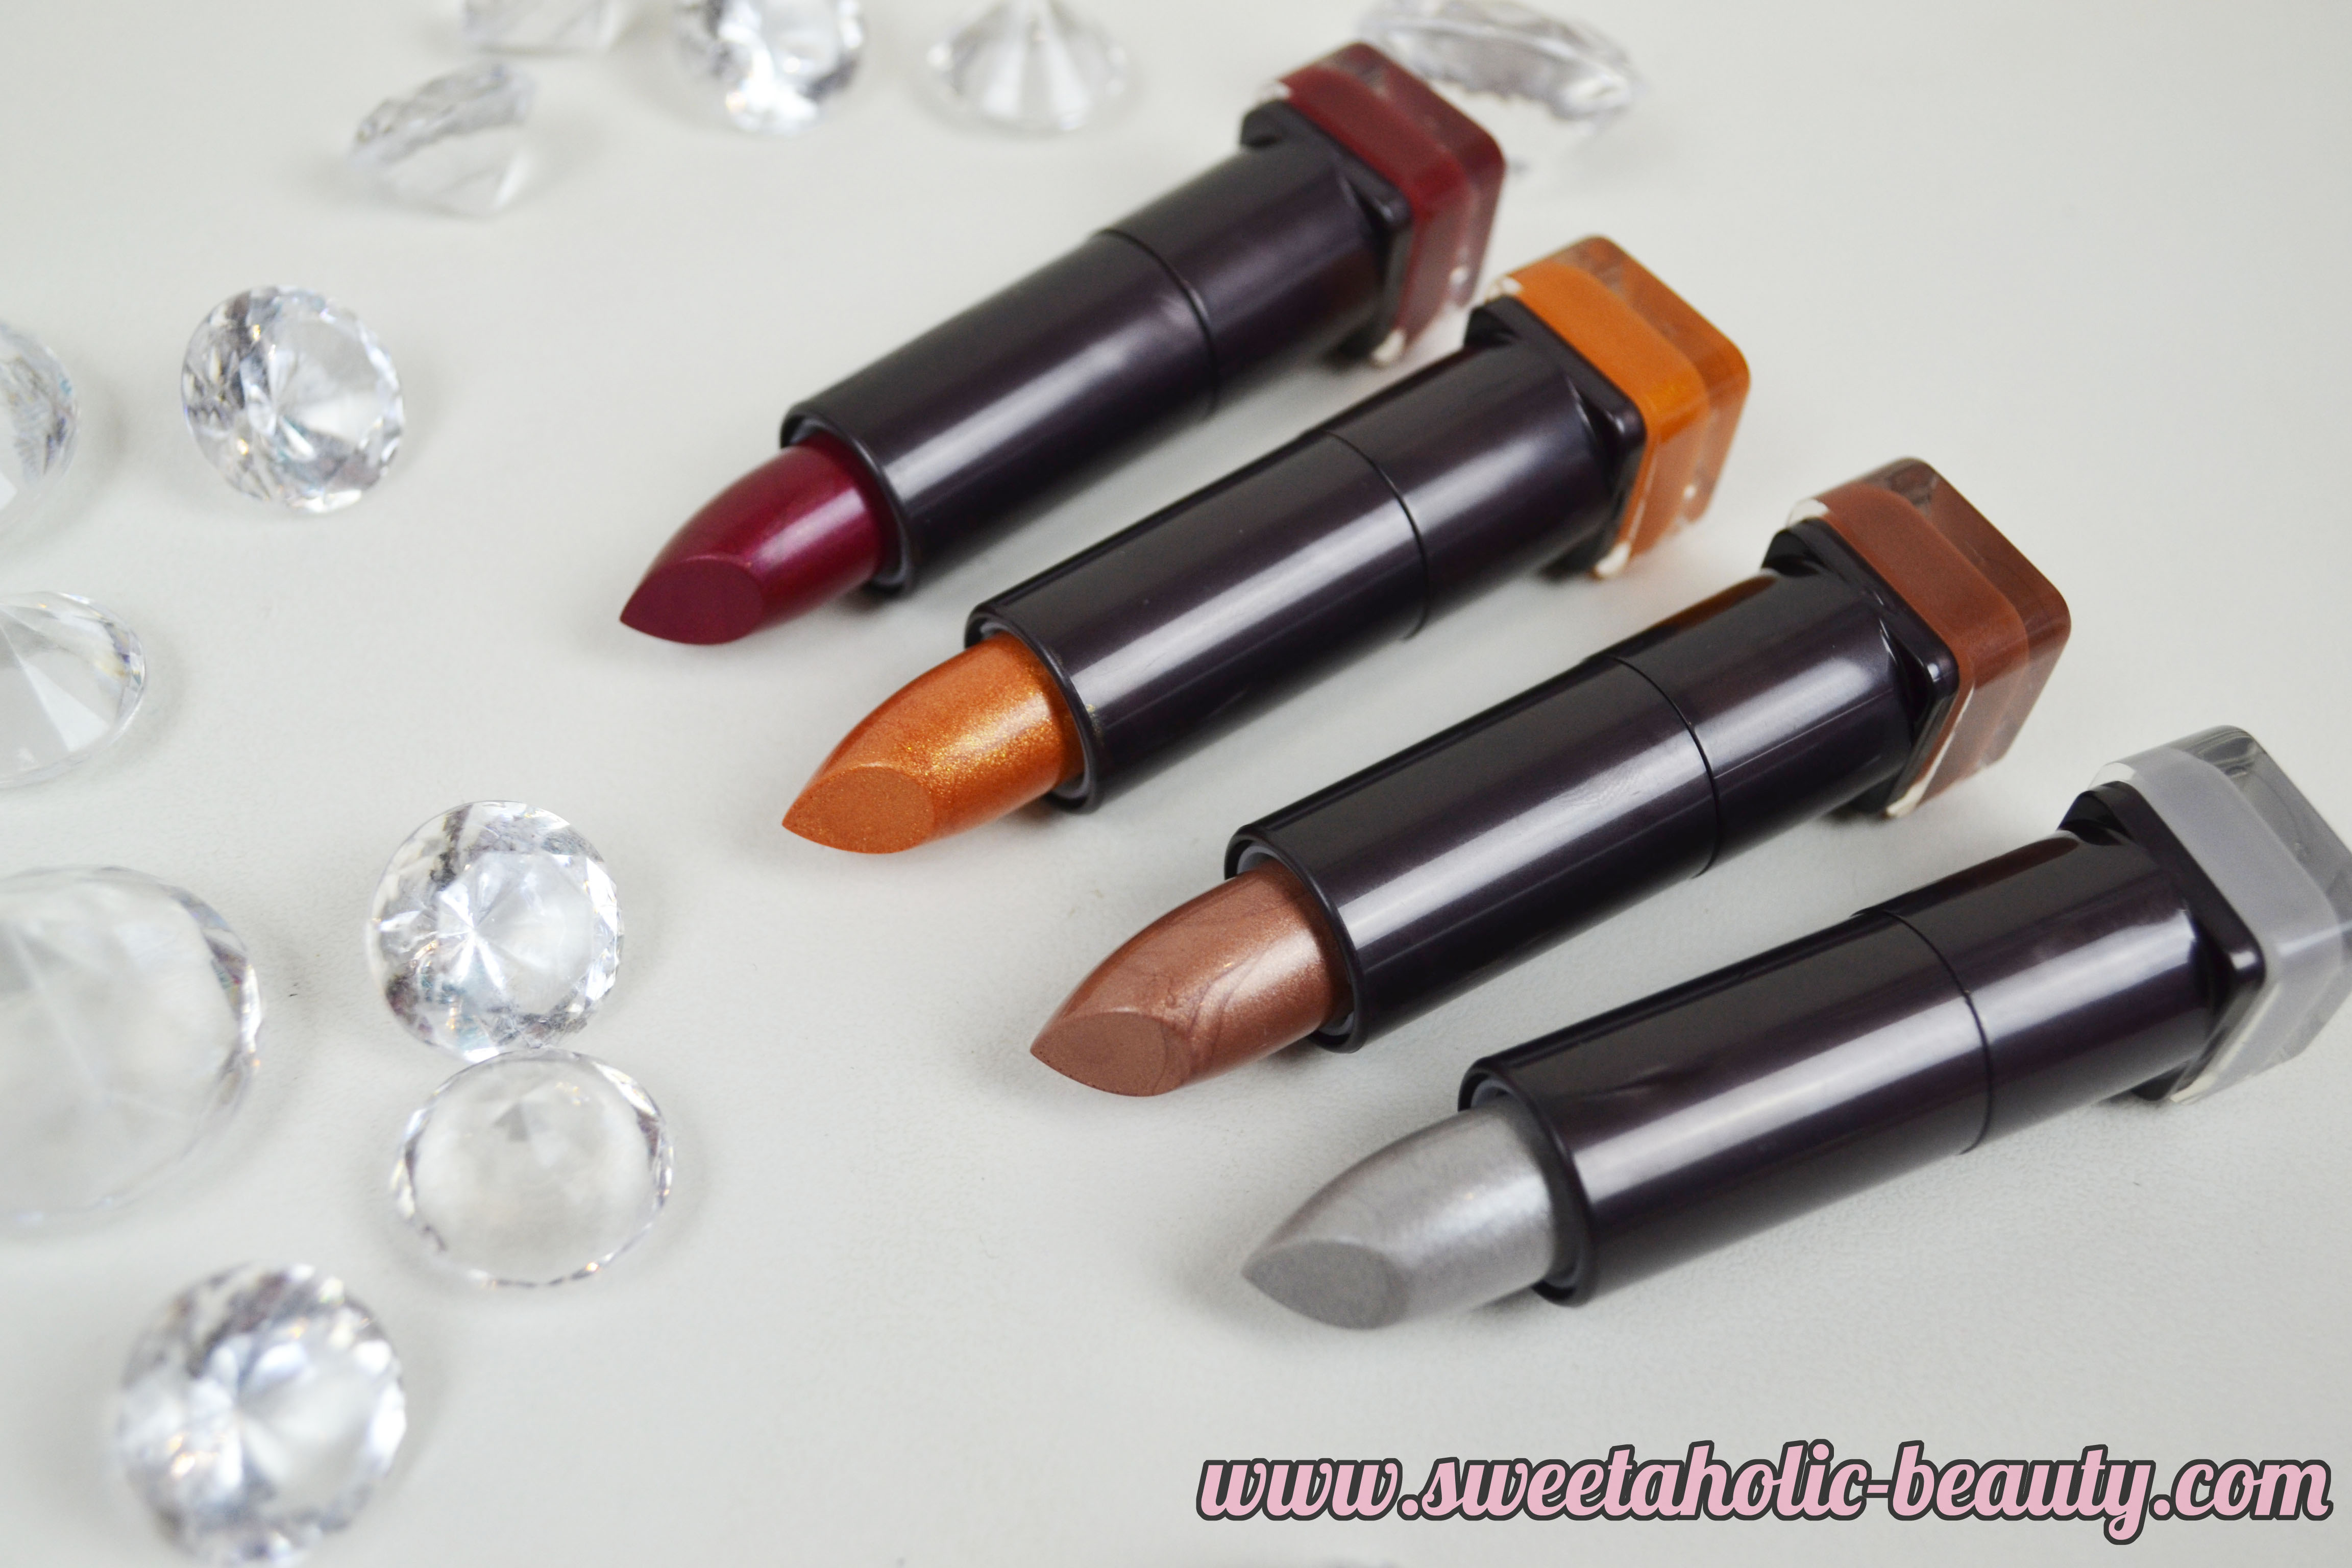 Covergirl Cosmetics Star Wars Colorlicious Lipstick Collection Review & Swatches